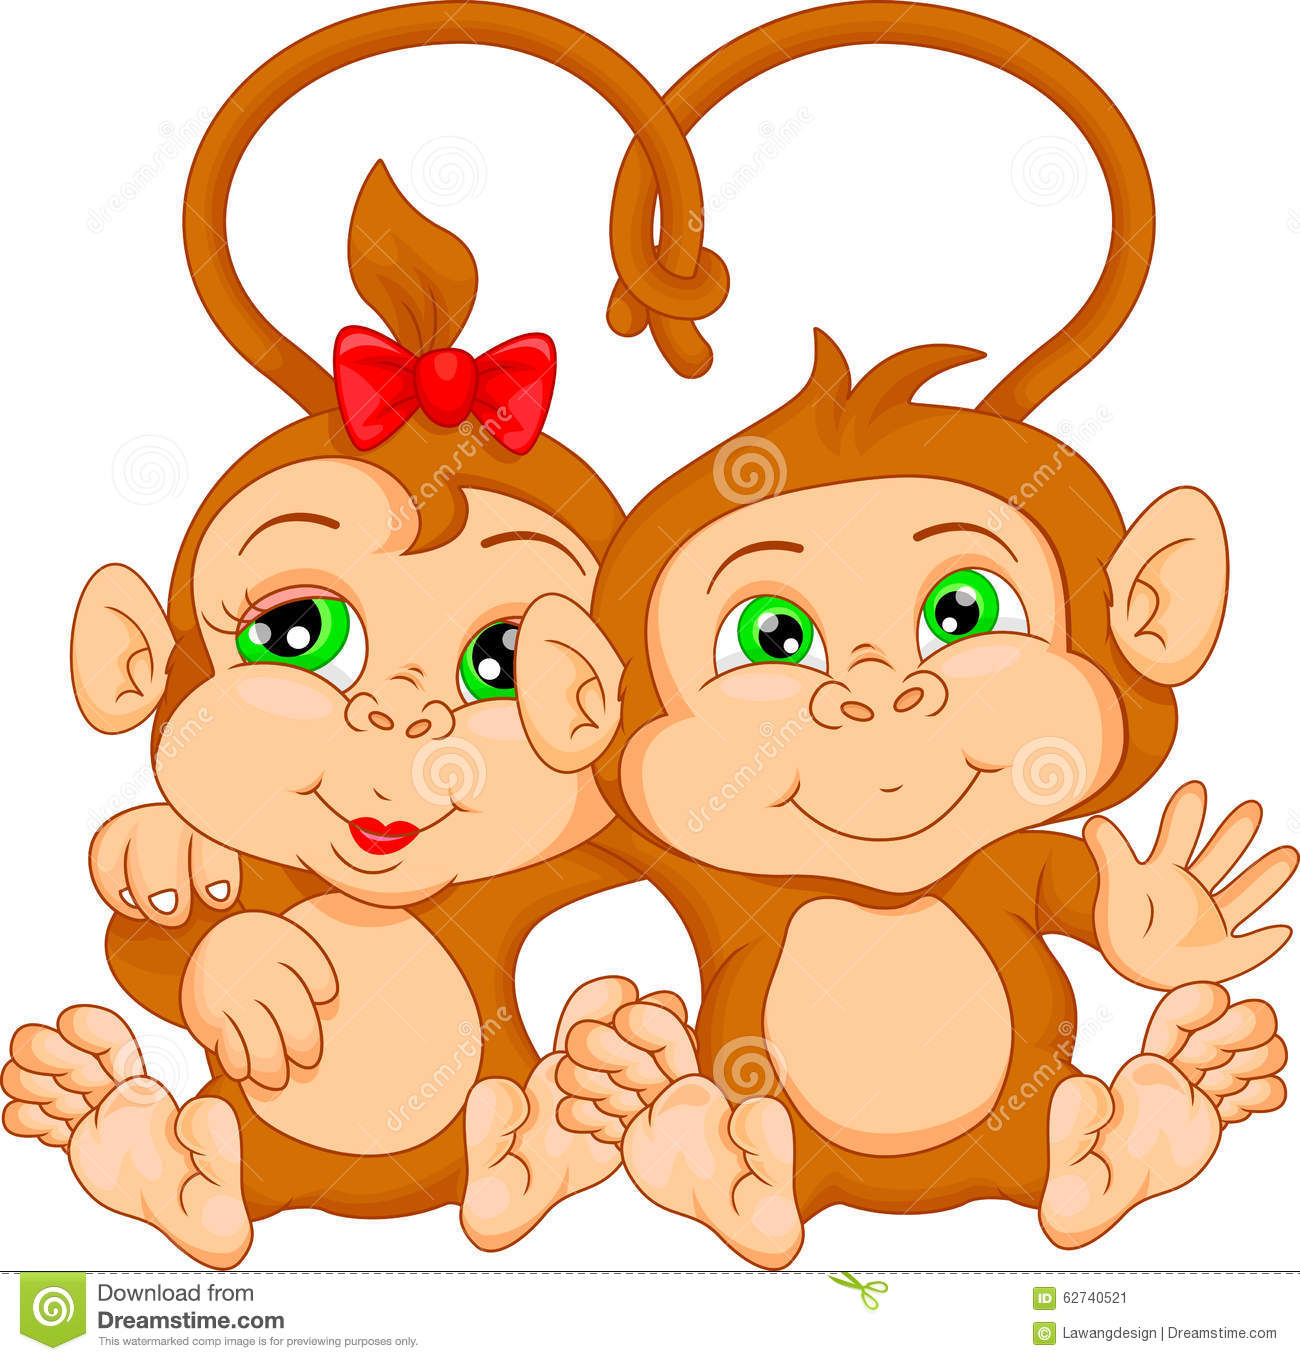 Cute cartoon monkey love - photo#10